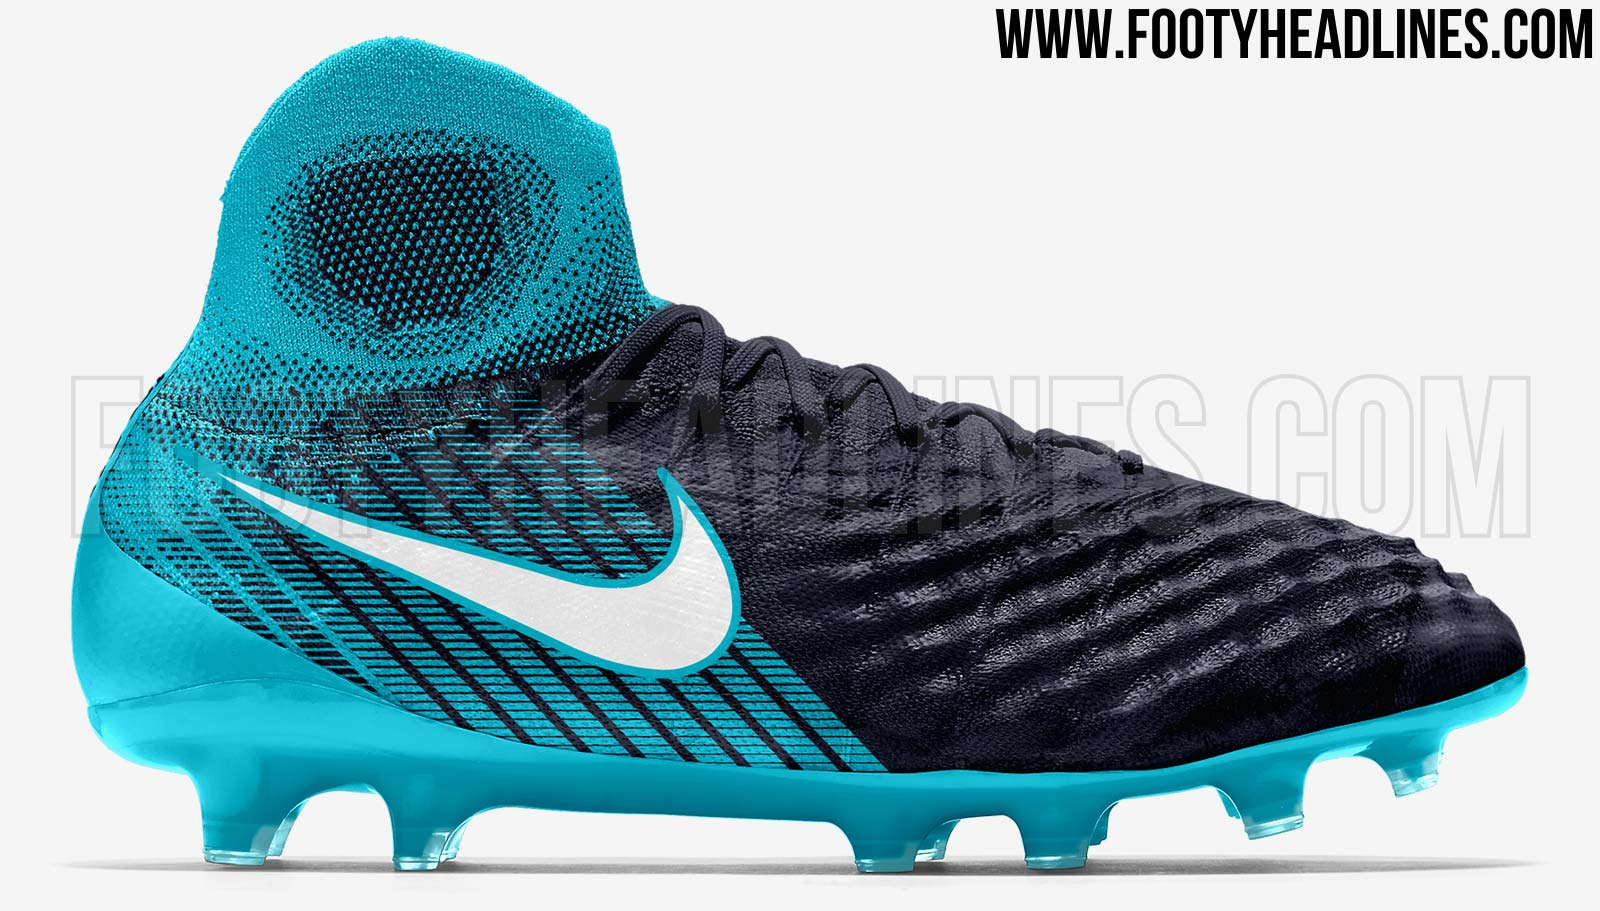 nike magista obra ii ice pack boots revealed footy headlines. Black Bedroom Furniture Sets. Home Design Ideas